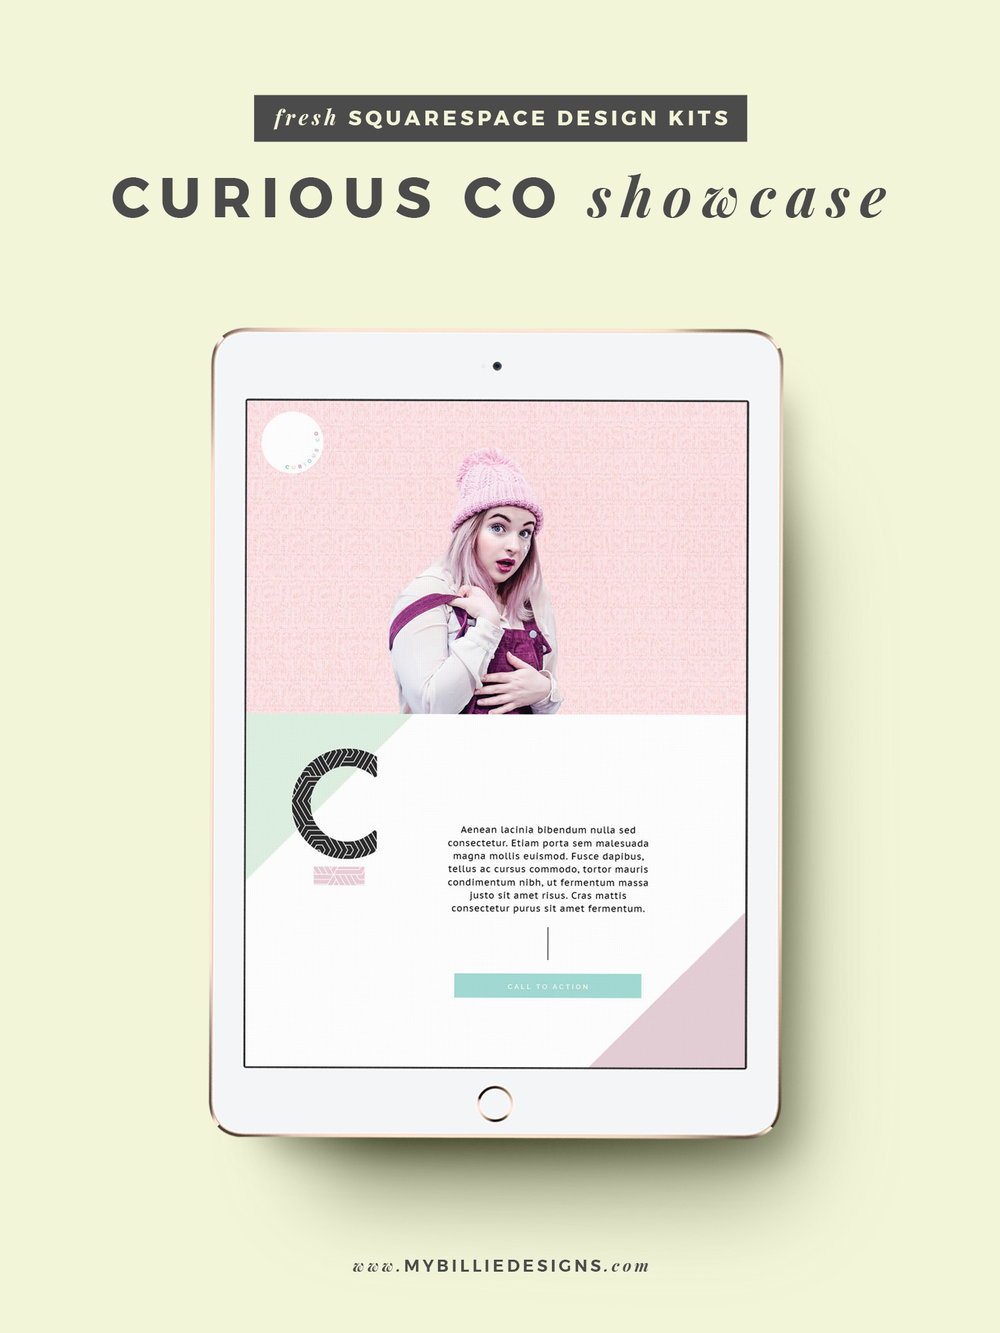 MBD Squarespace Design Kits | Curious Co Design + Customization Ideas